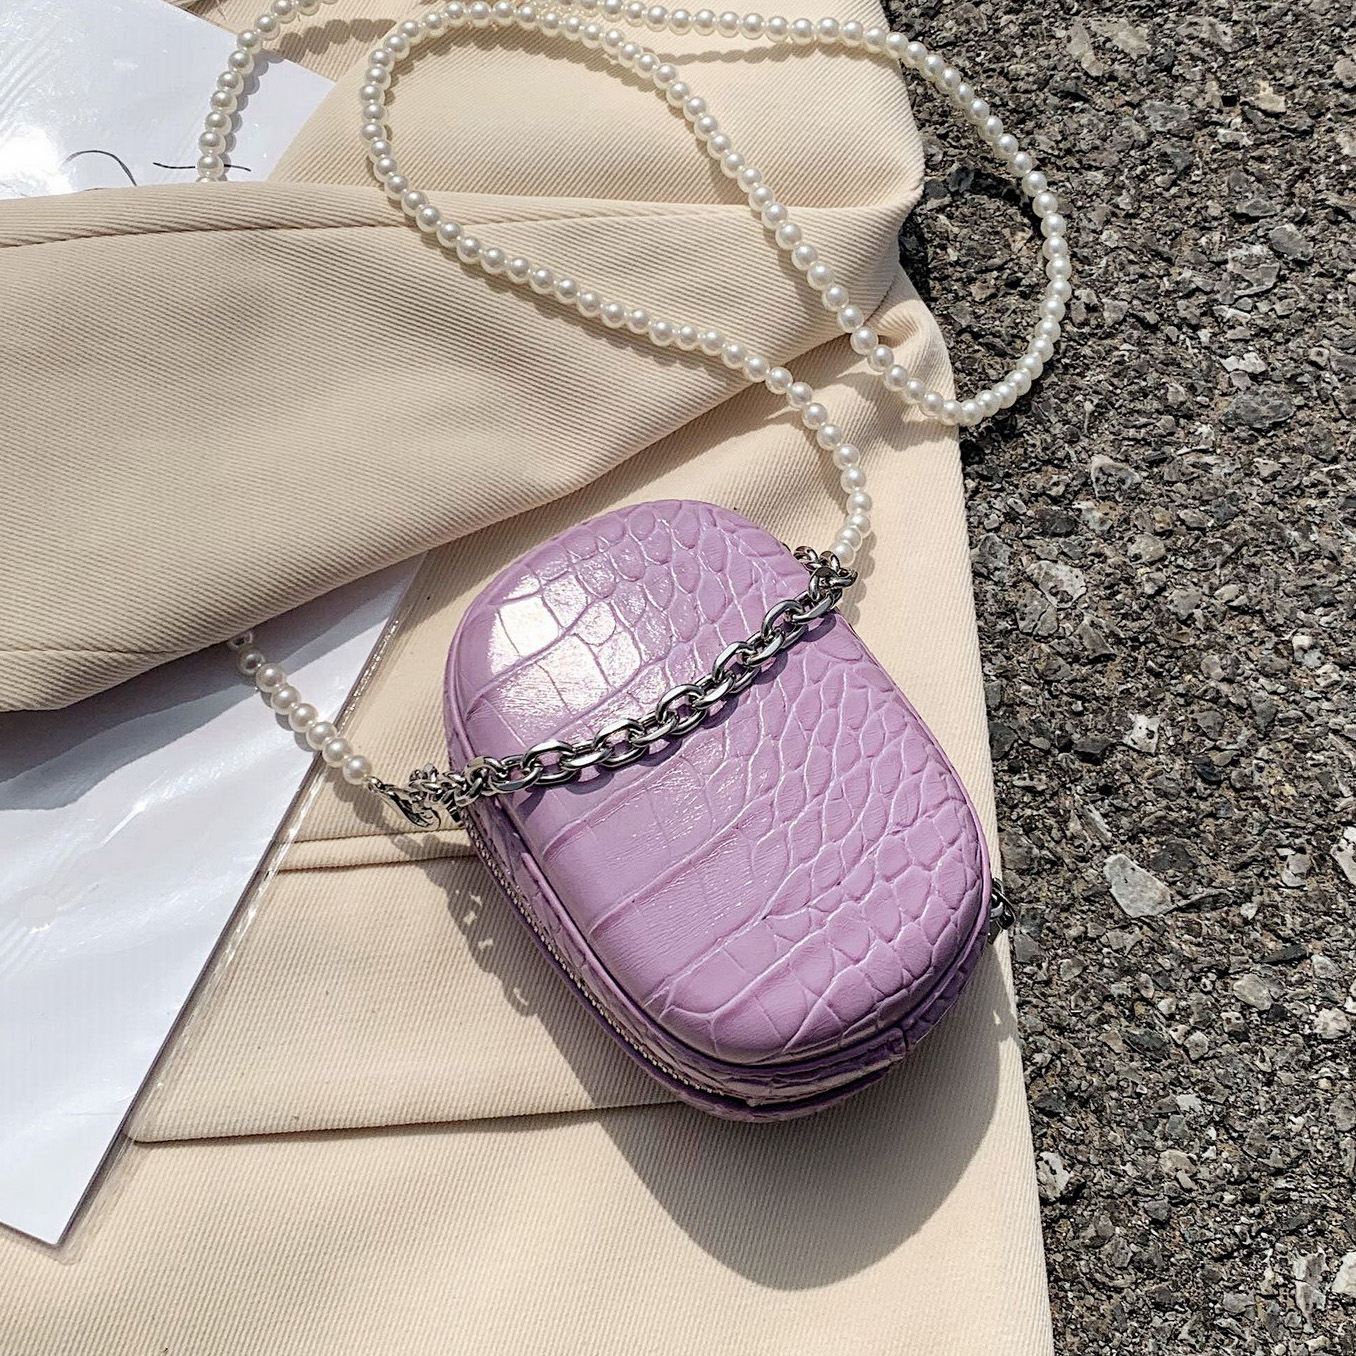 Mini Box Design Crocodile Pattern PU Leather Crossbody Bags For Women 2020 Summer Shoulder Handbags With Pearl Shoulder Belt